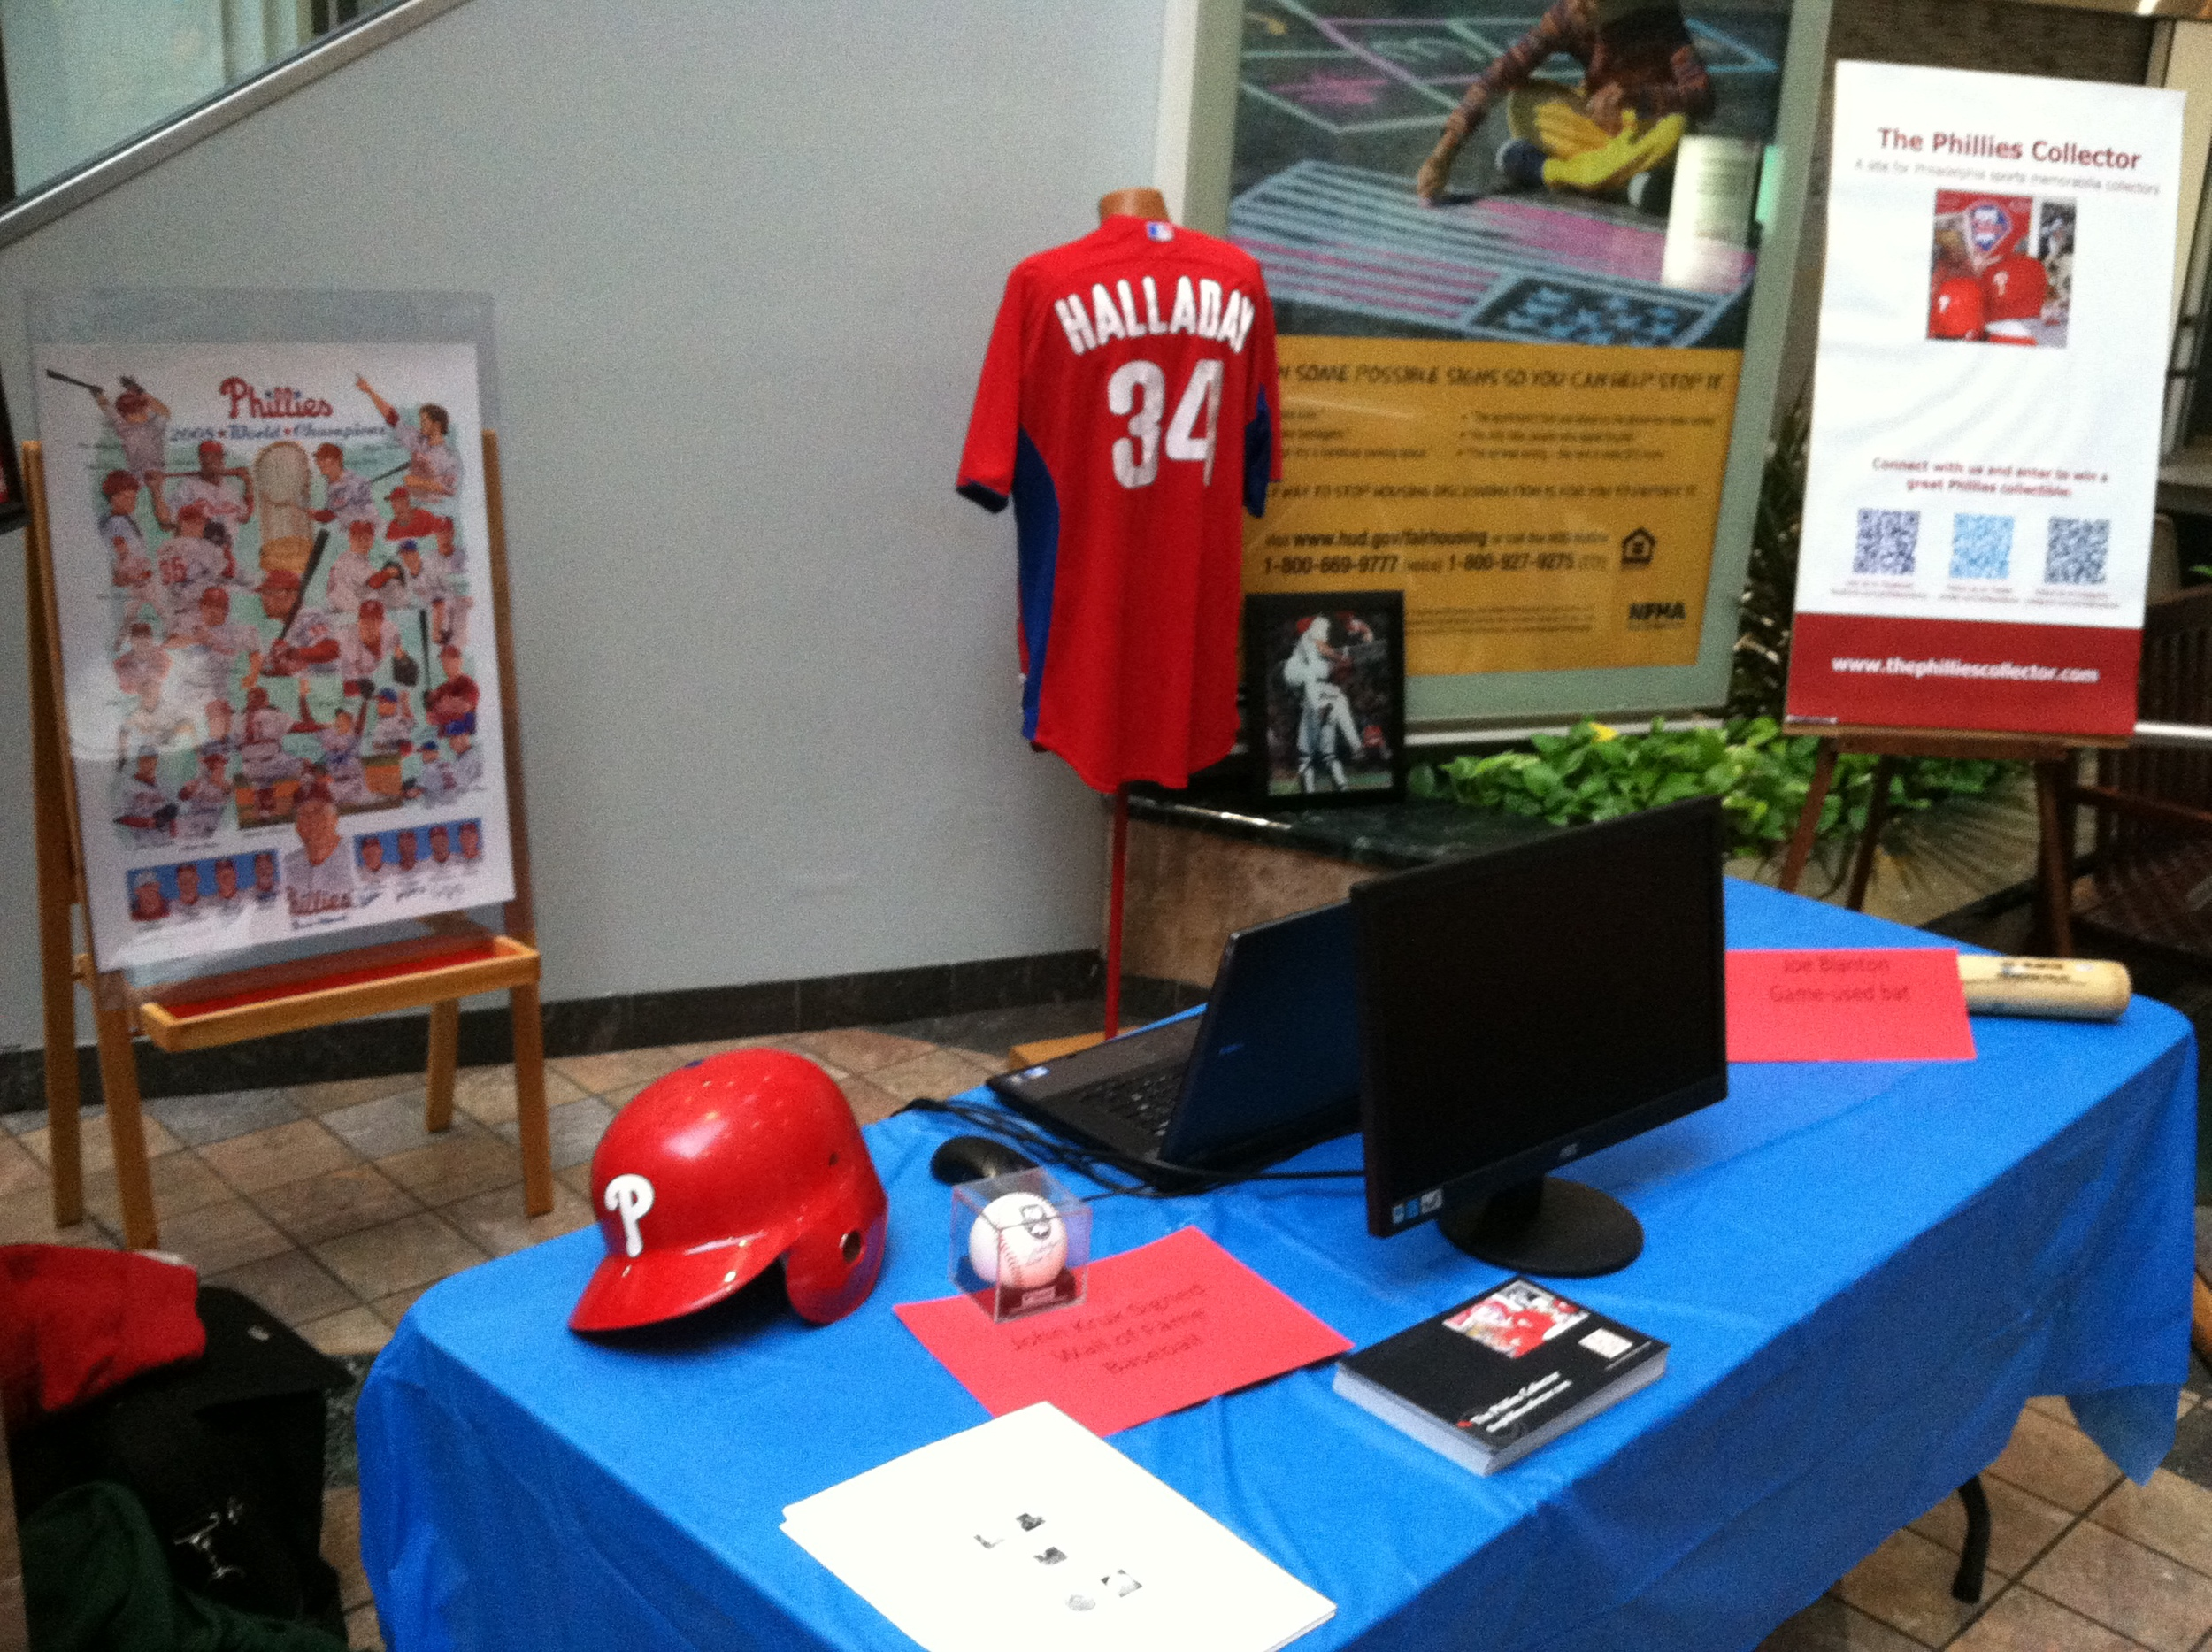 The Phillies Collector booth at the Granite Run Mall